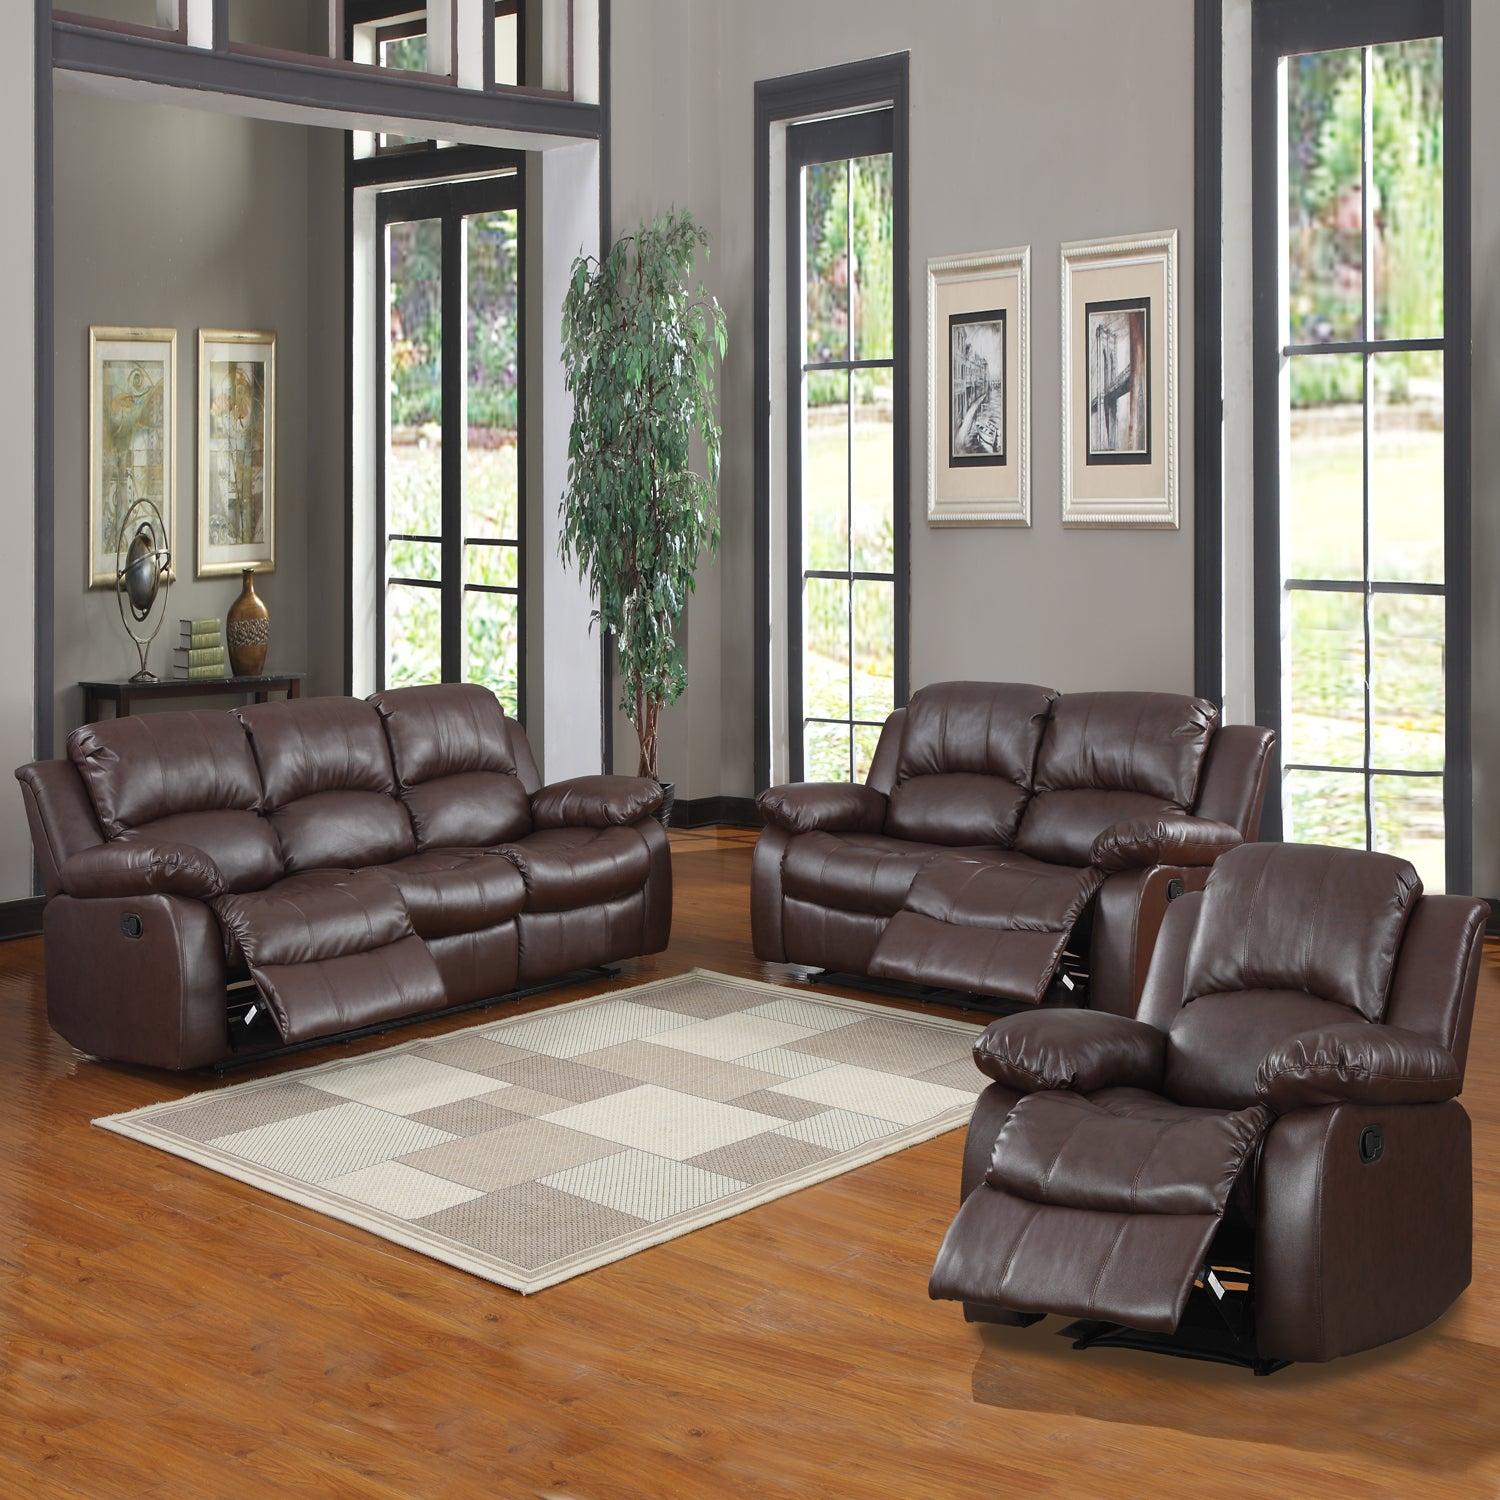 Tribecca home coleford 3 piece tufted transitional Reclining living room furniture